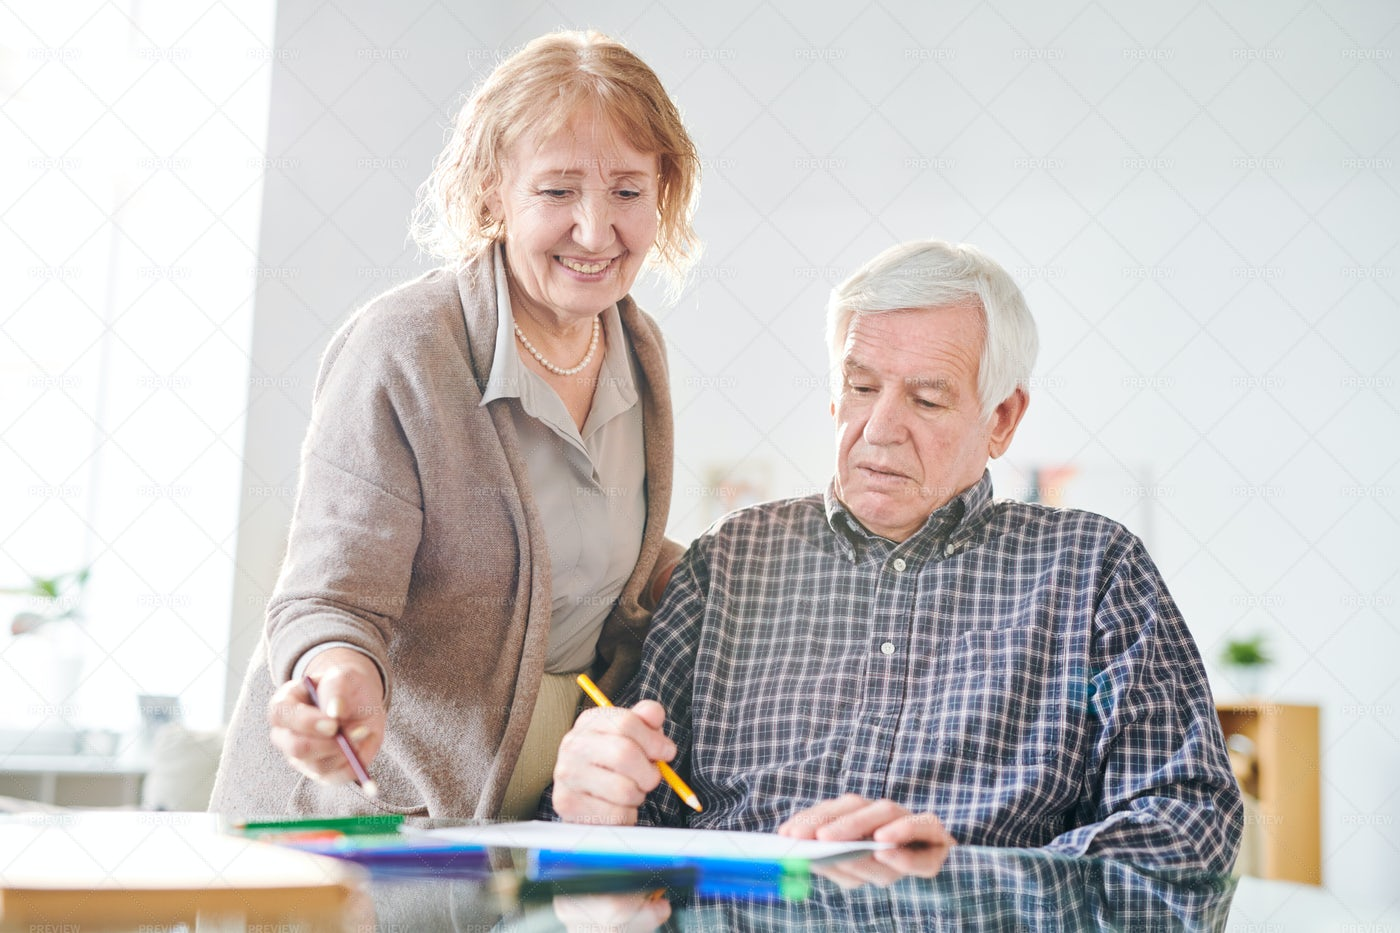 Discussing What To Draw: Stock Photos